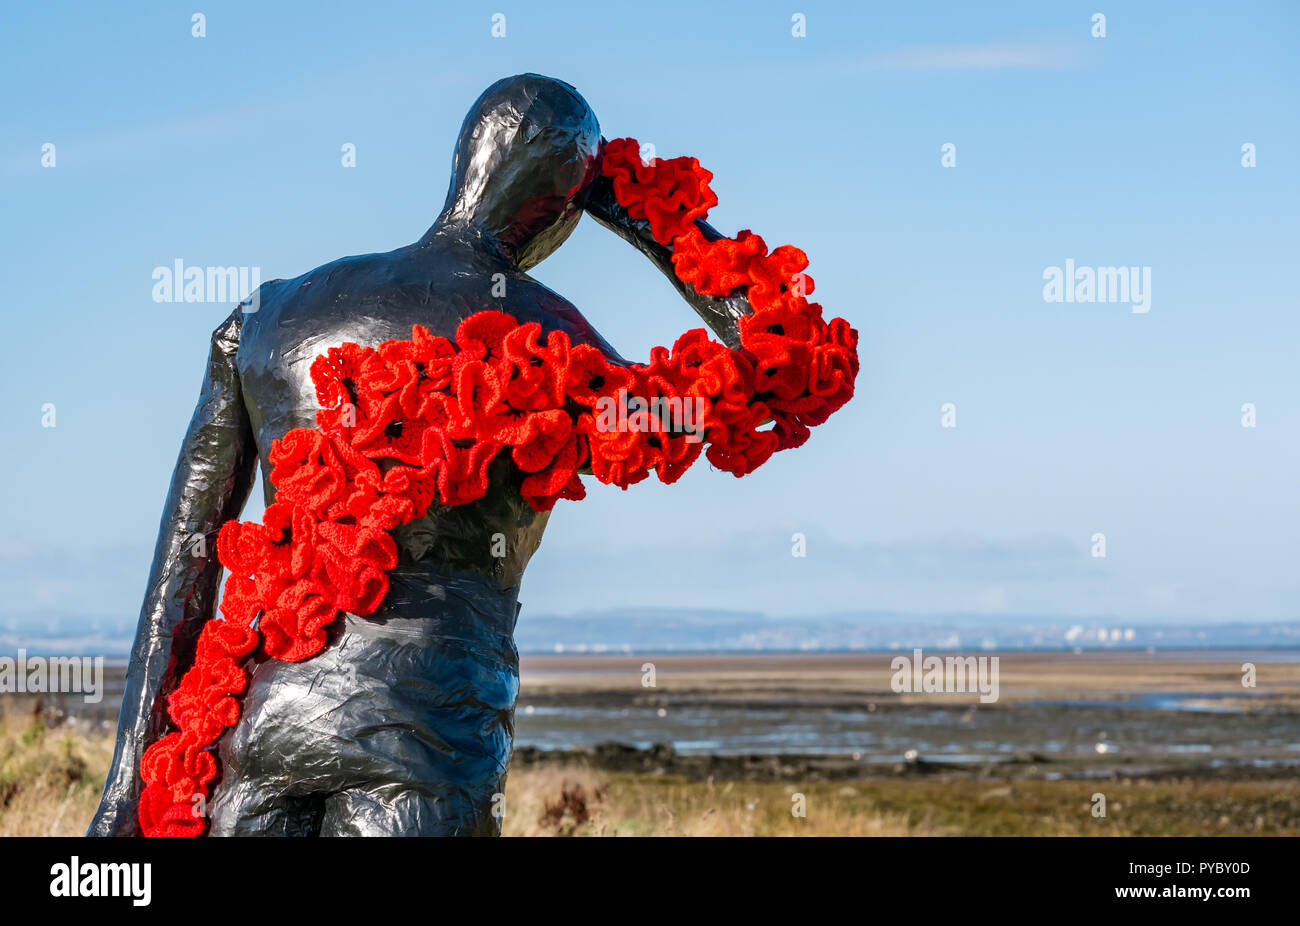 aberlady-east-lothian-scotland-united-kingdom-27th-october-2018-remembrance-day-poppies-aberlady-craft-group-have-created-a-number-of-human-figures-around-the-village-decorated-with-handmade-crocheted-poppies-as-part-of-commemorations-for-the-centenary-of-the-armistice-for-poppy-scotland-a-figure-draped-in-poppies-looking-out-over-aberlady-bay-PYBY0D.jpg